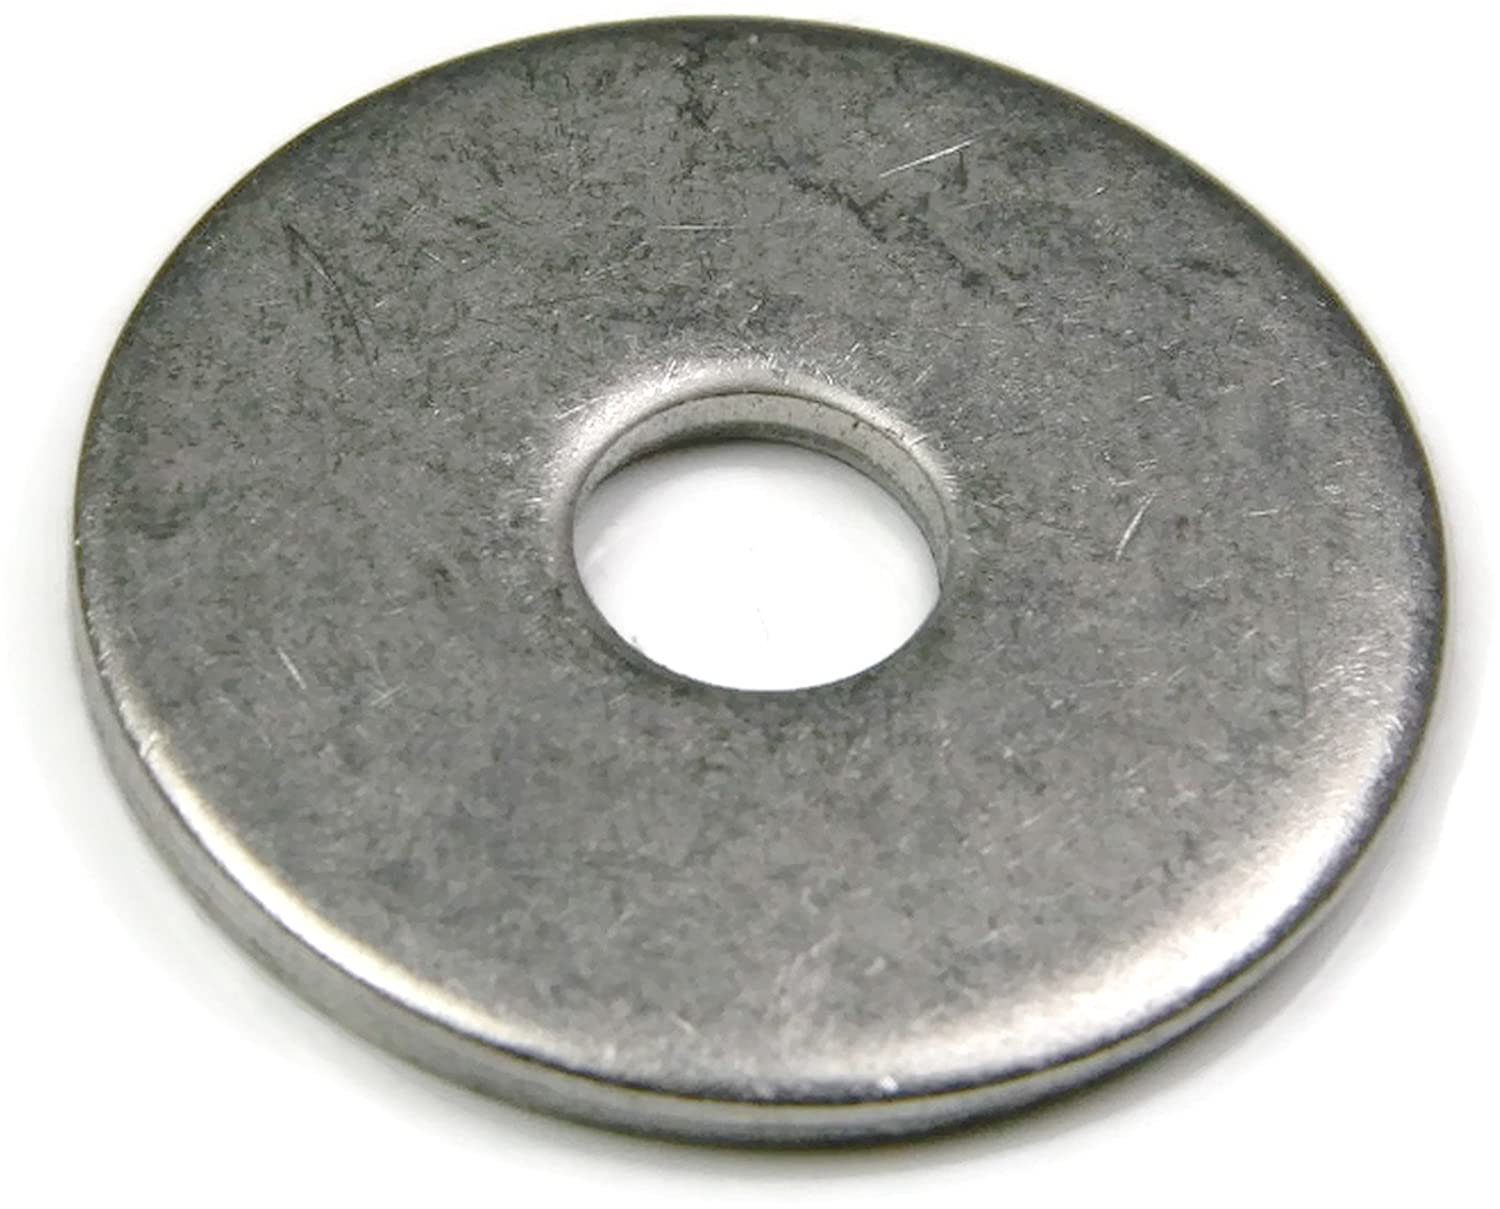 Stainless Steel Fender Washer 5//16 x 1-1//2 Qty 25